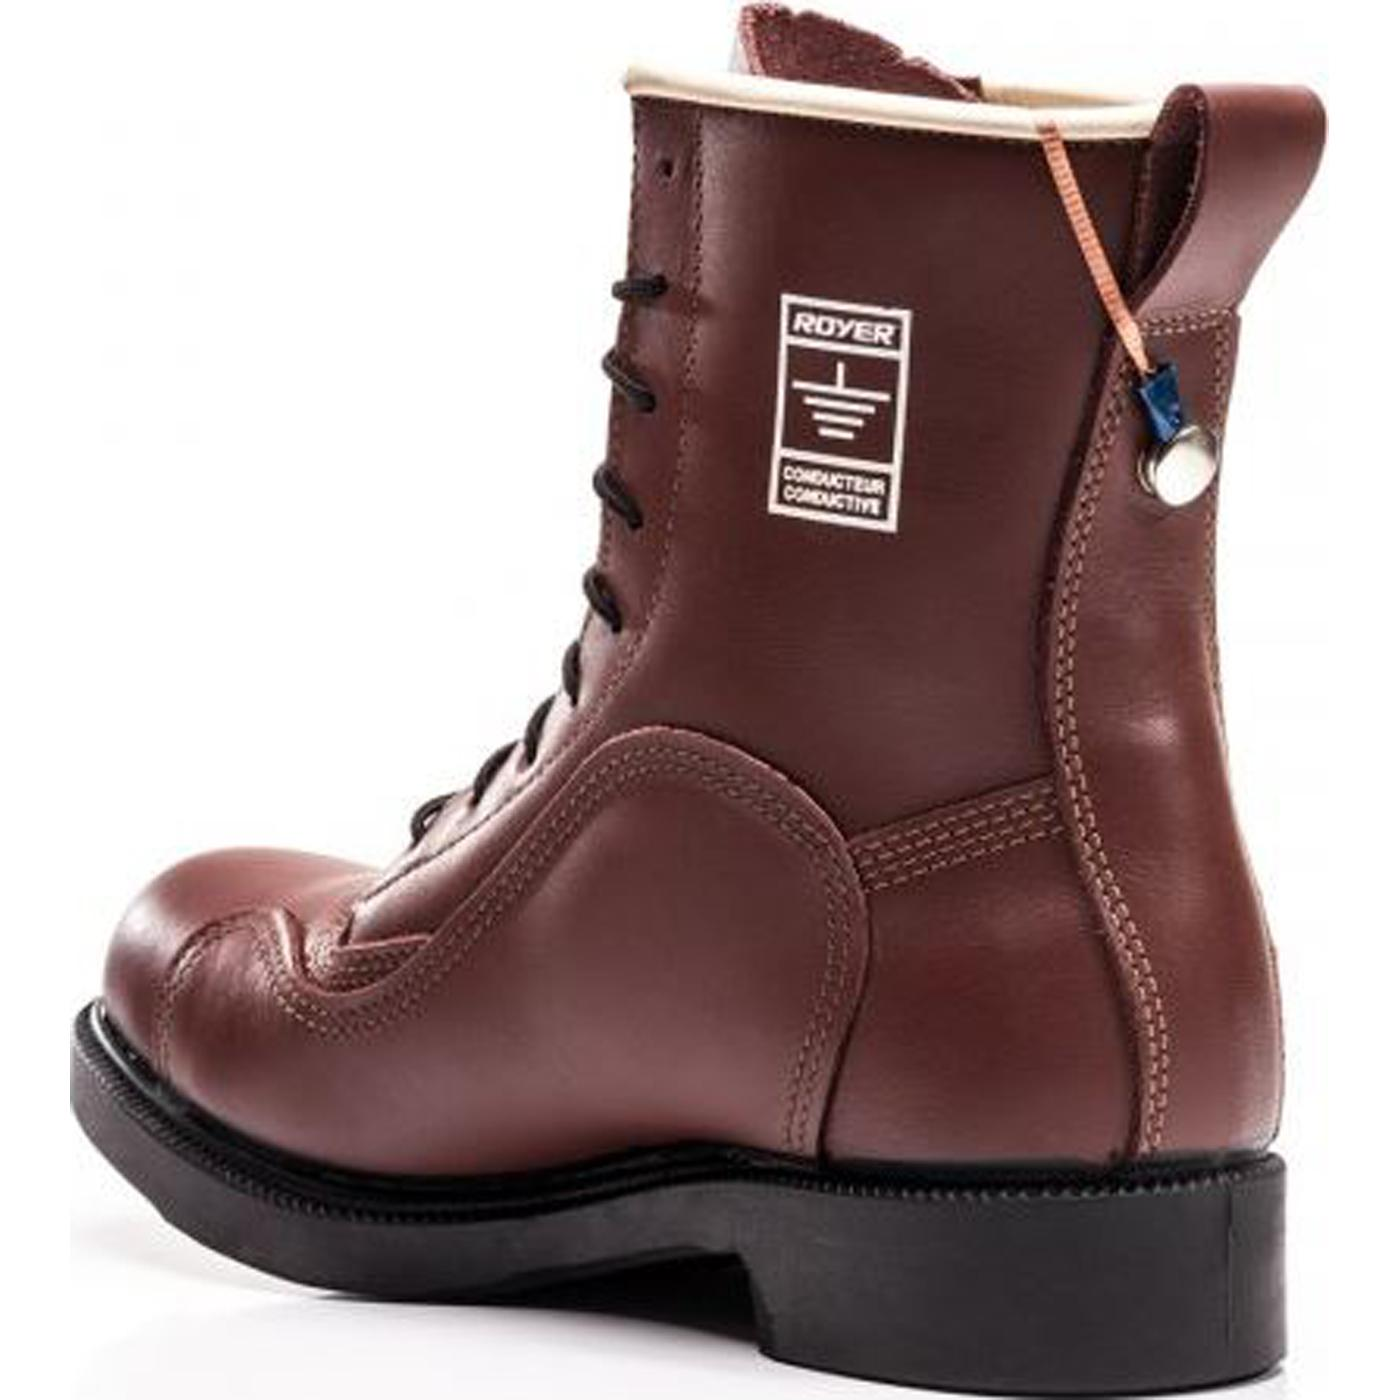 Conductive Steel Toe Safety Shoes